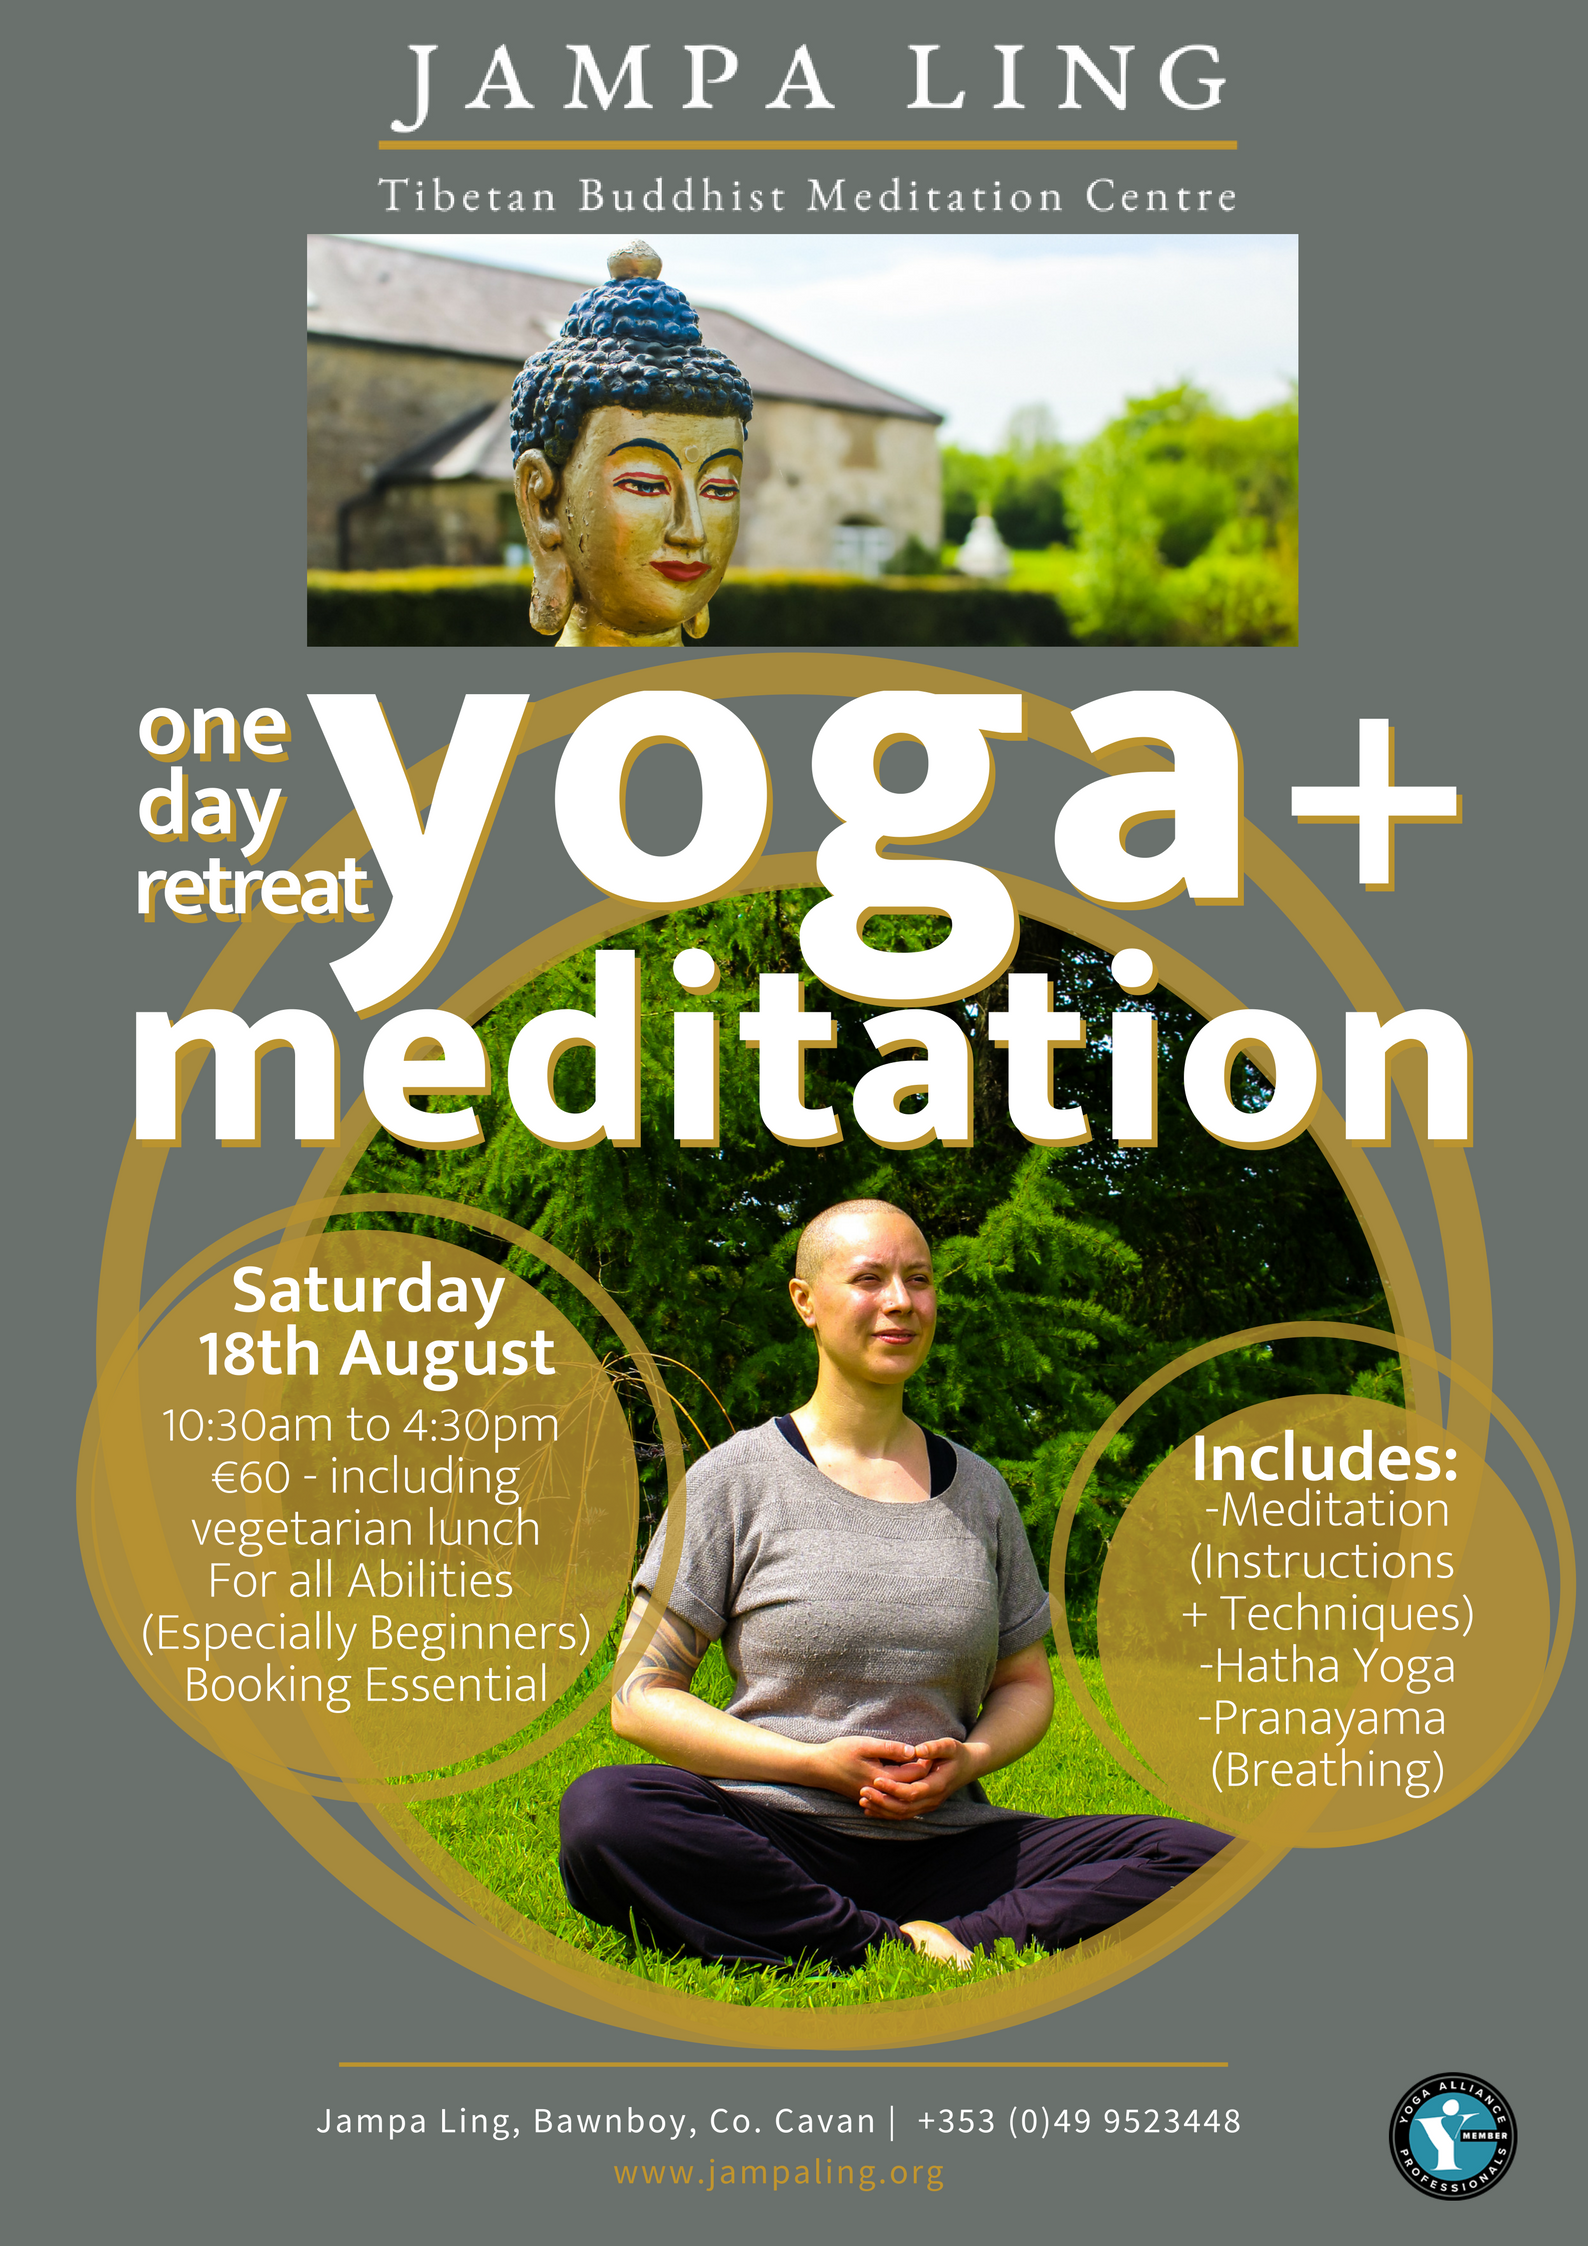 3_Jampa_Ling_Yoga_&_Meditation_OneDayRetreat.png